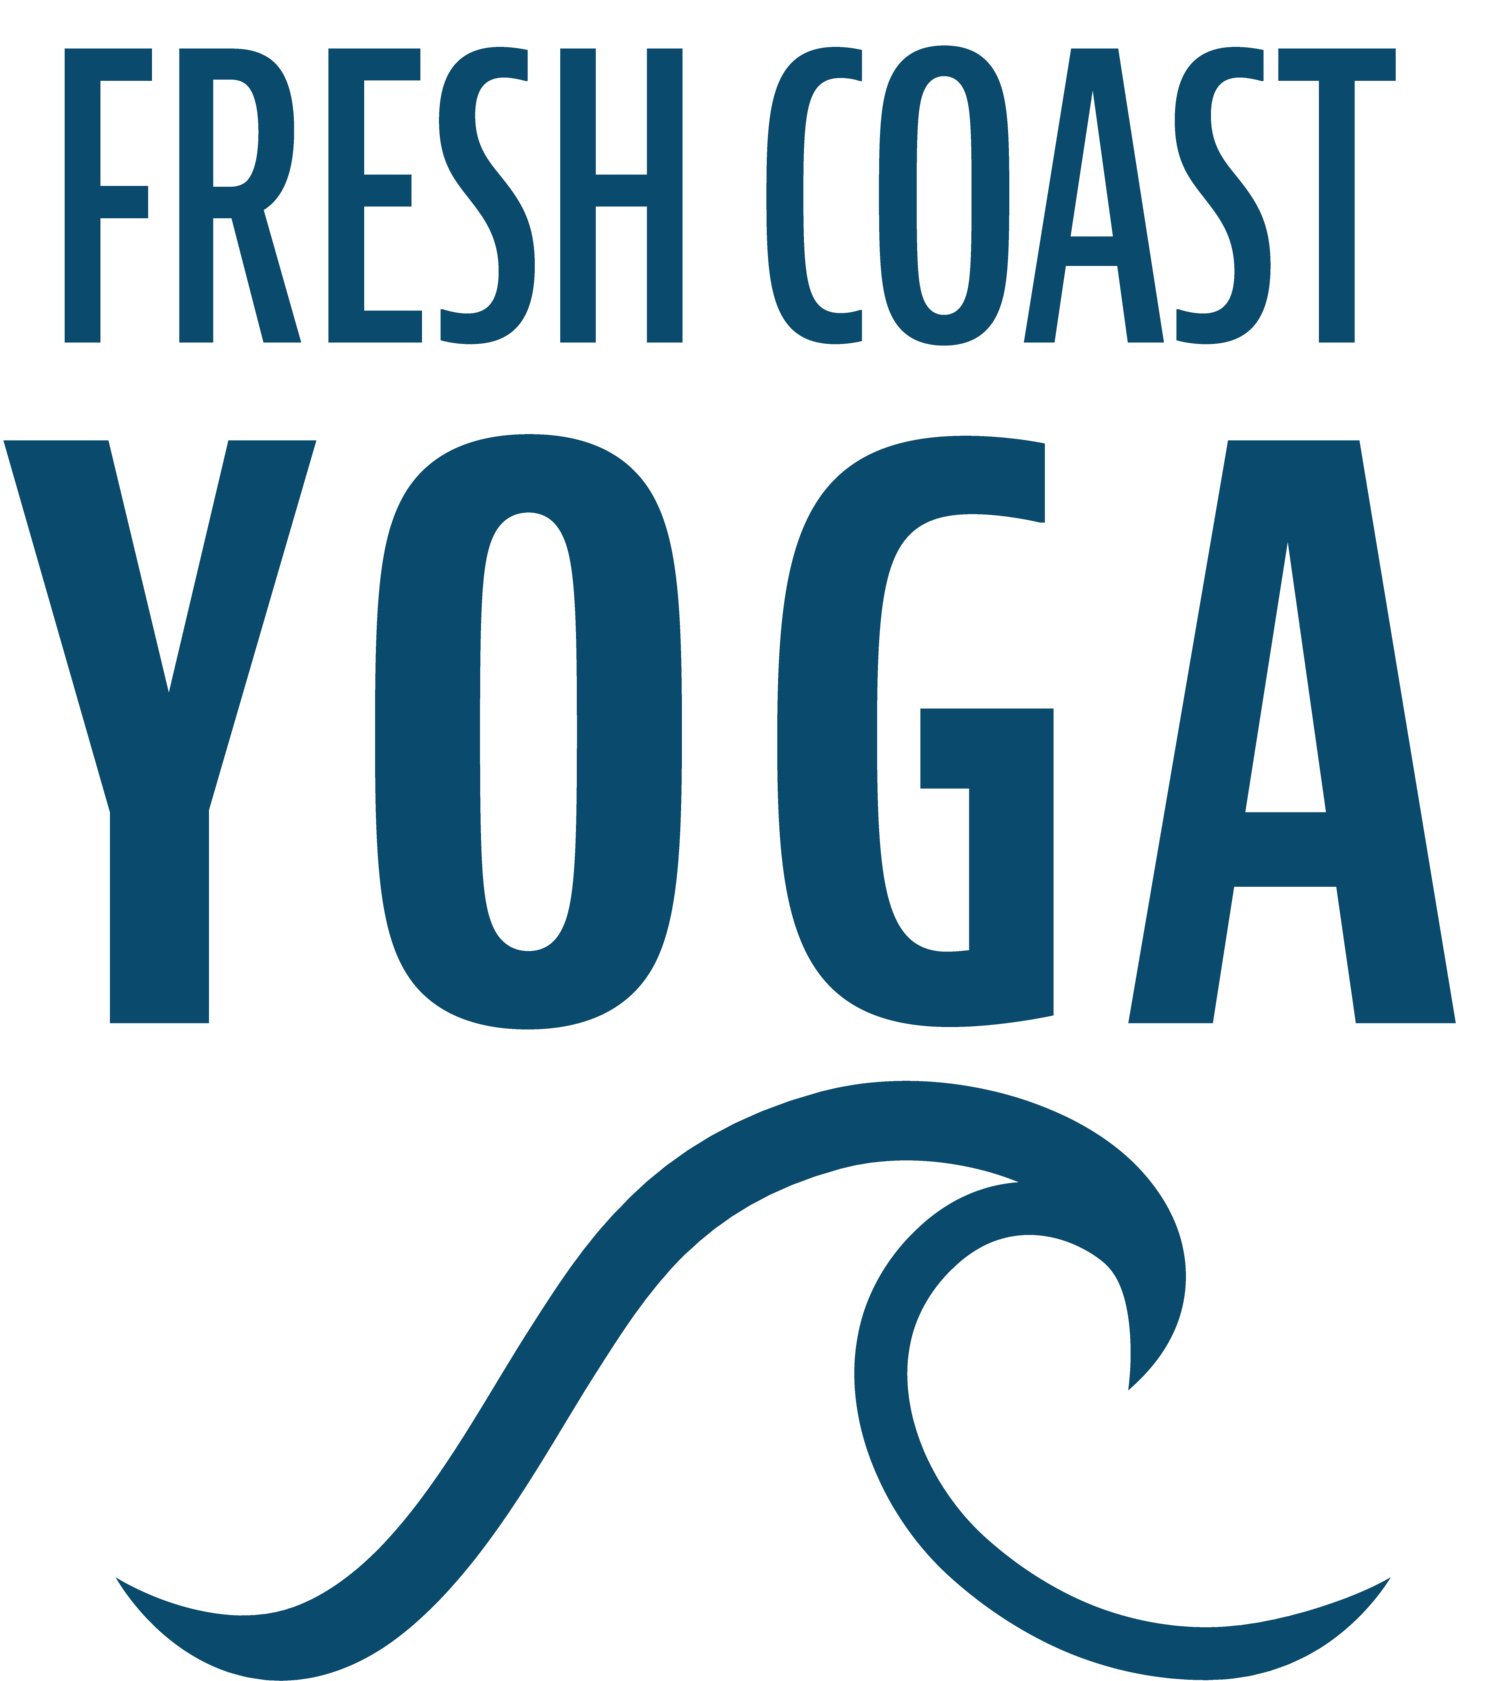 Fresh Coast Yoga